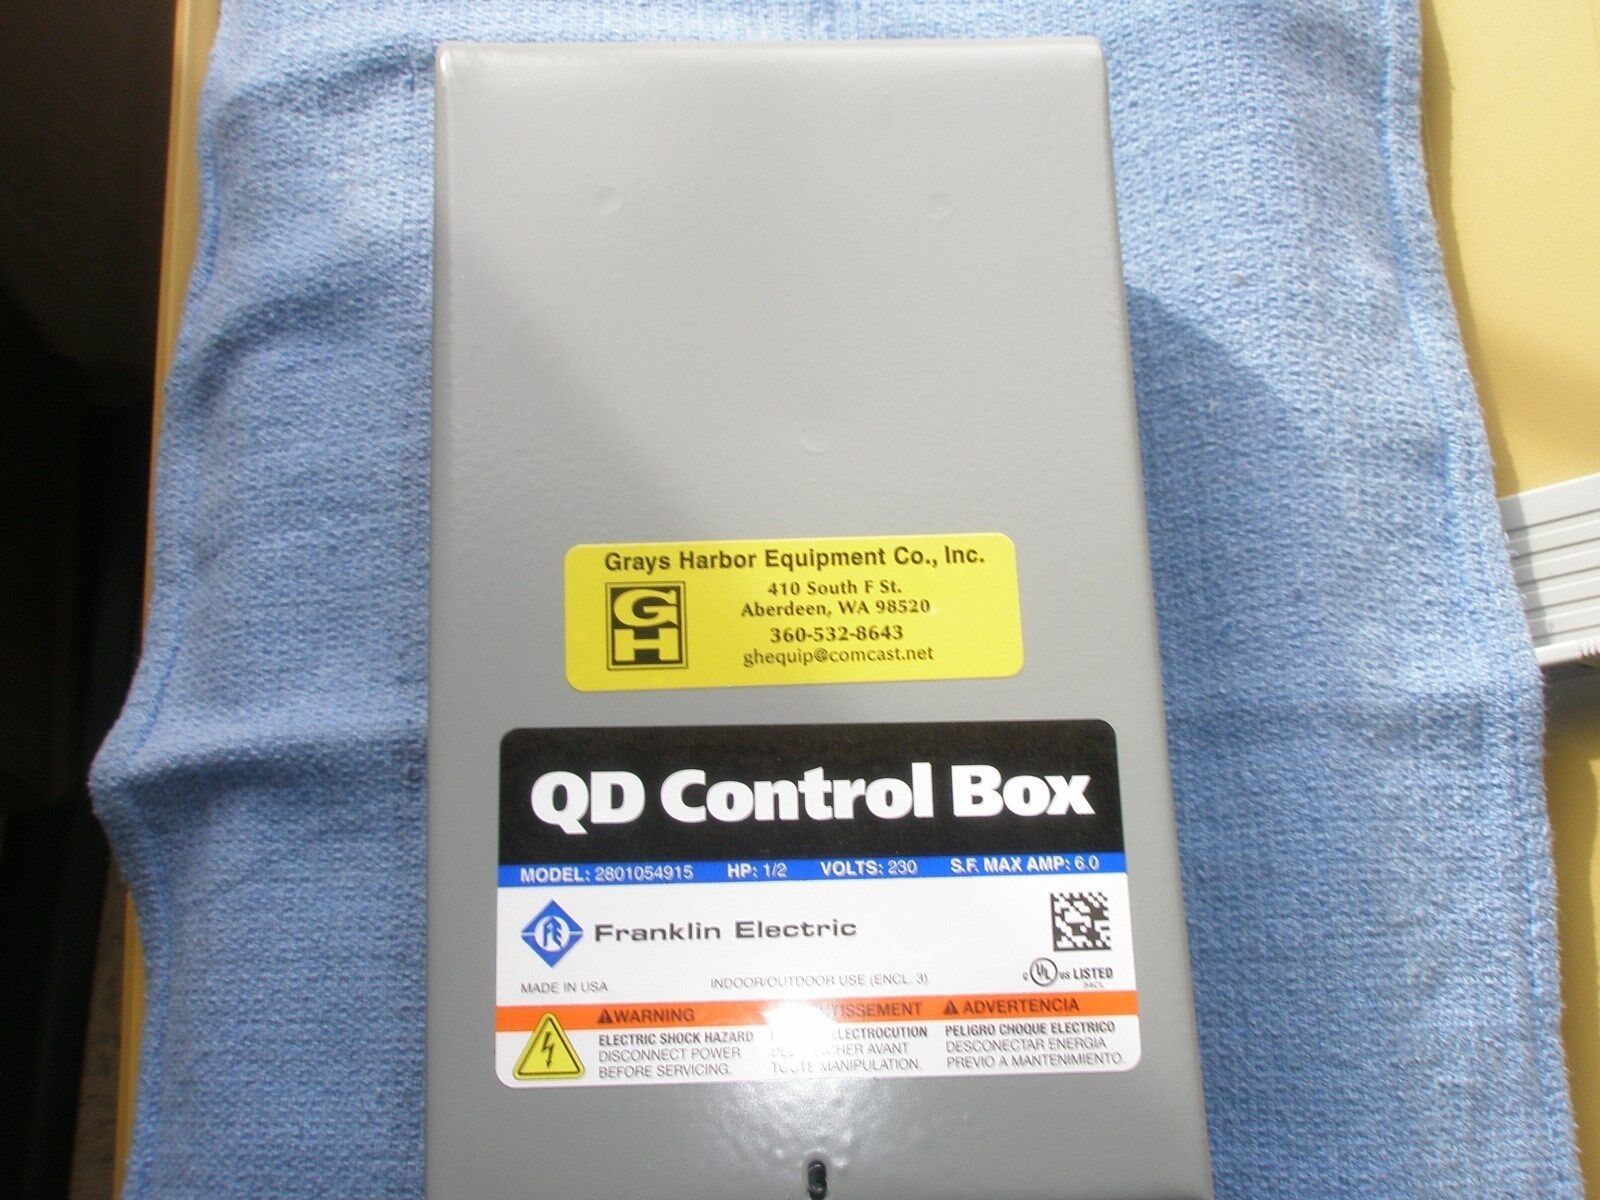 Wiring Diagram For Franklin Model 2801084910 44 Qd Control Box S L1600 Electric Ebay At